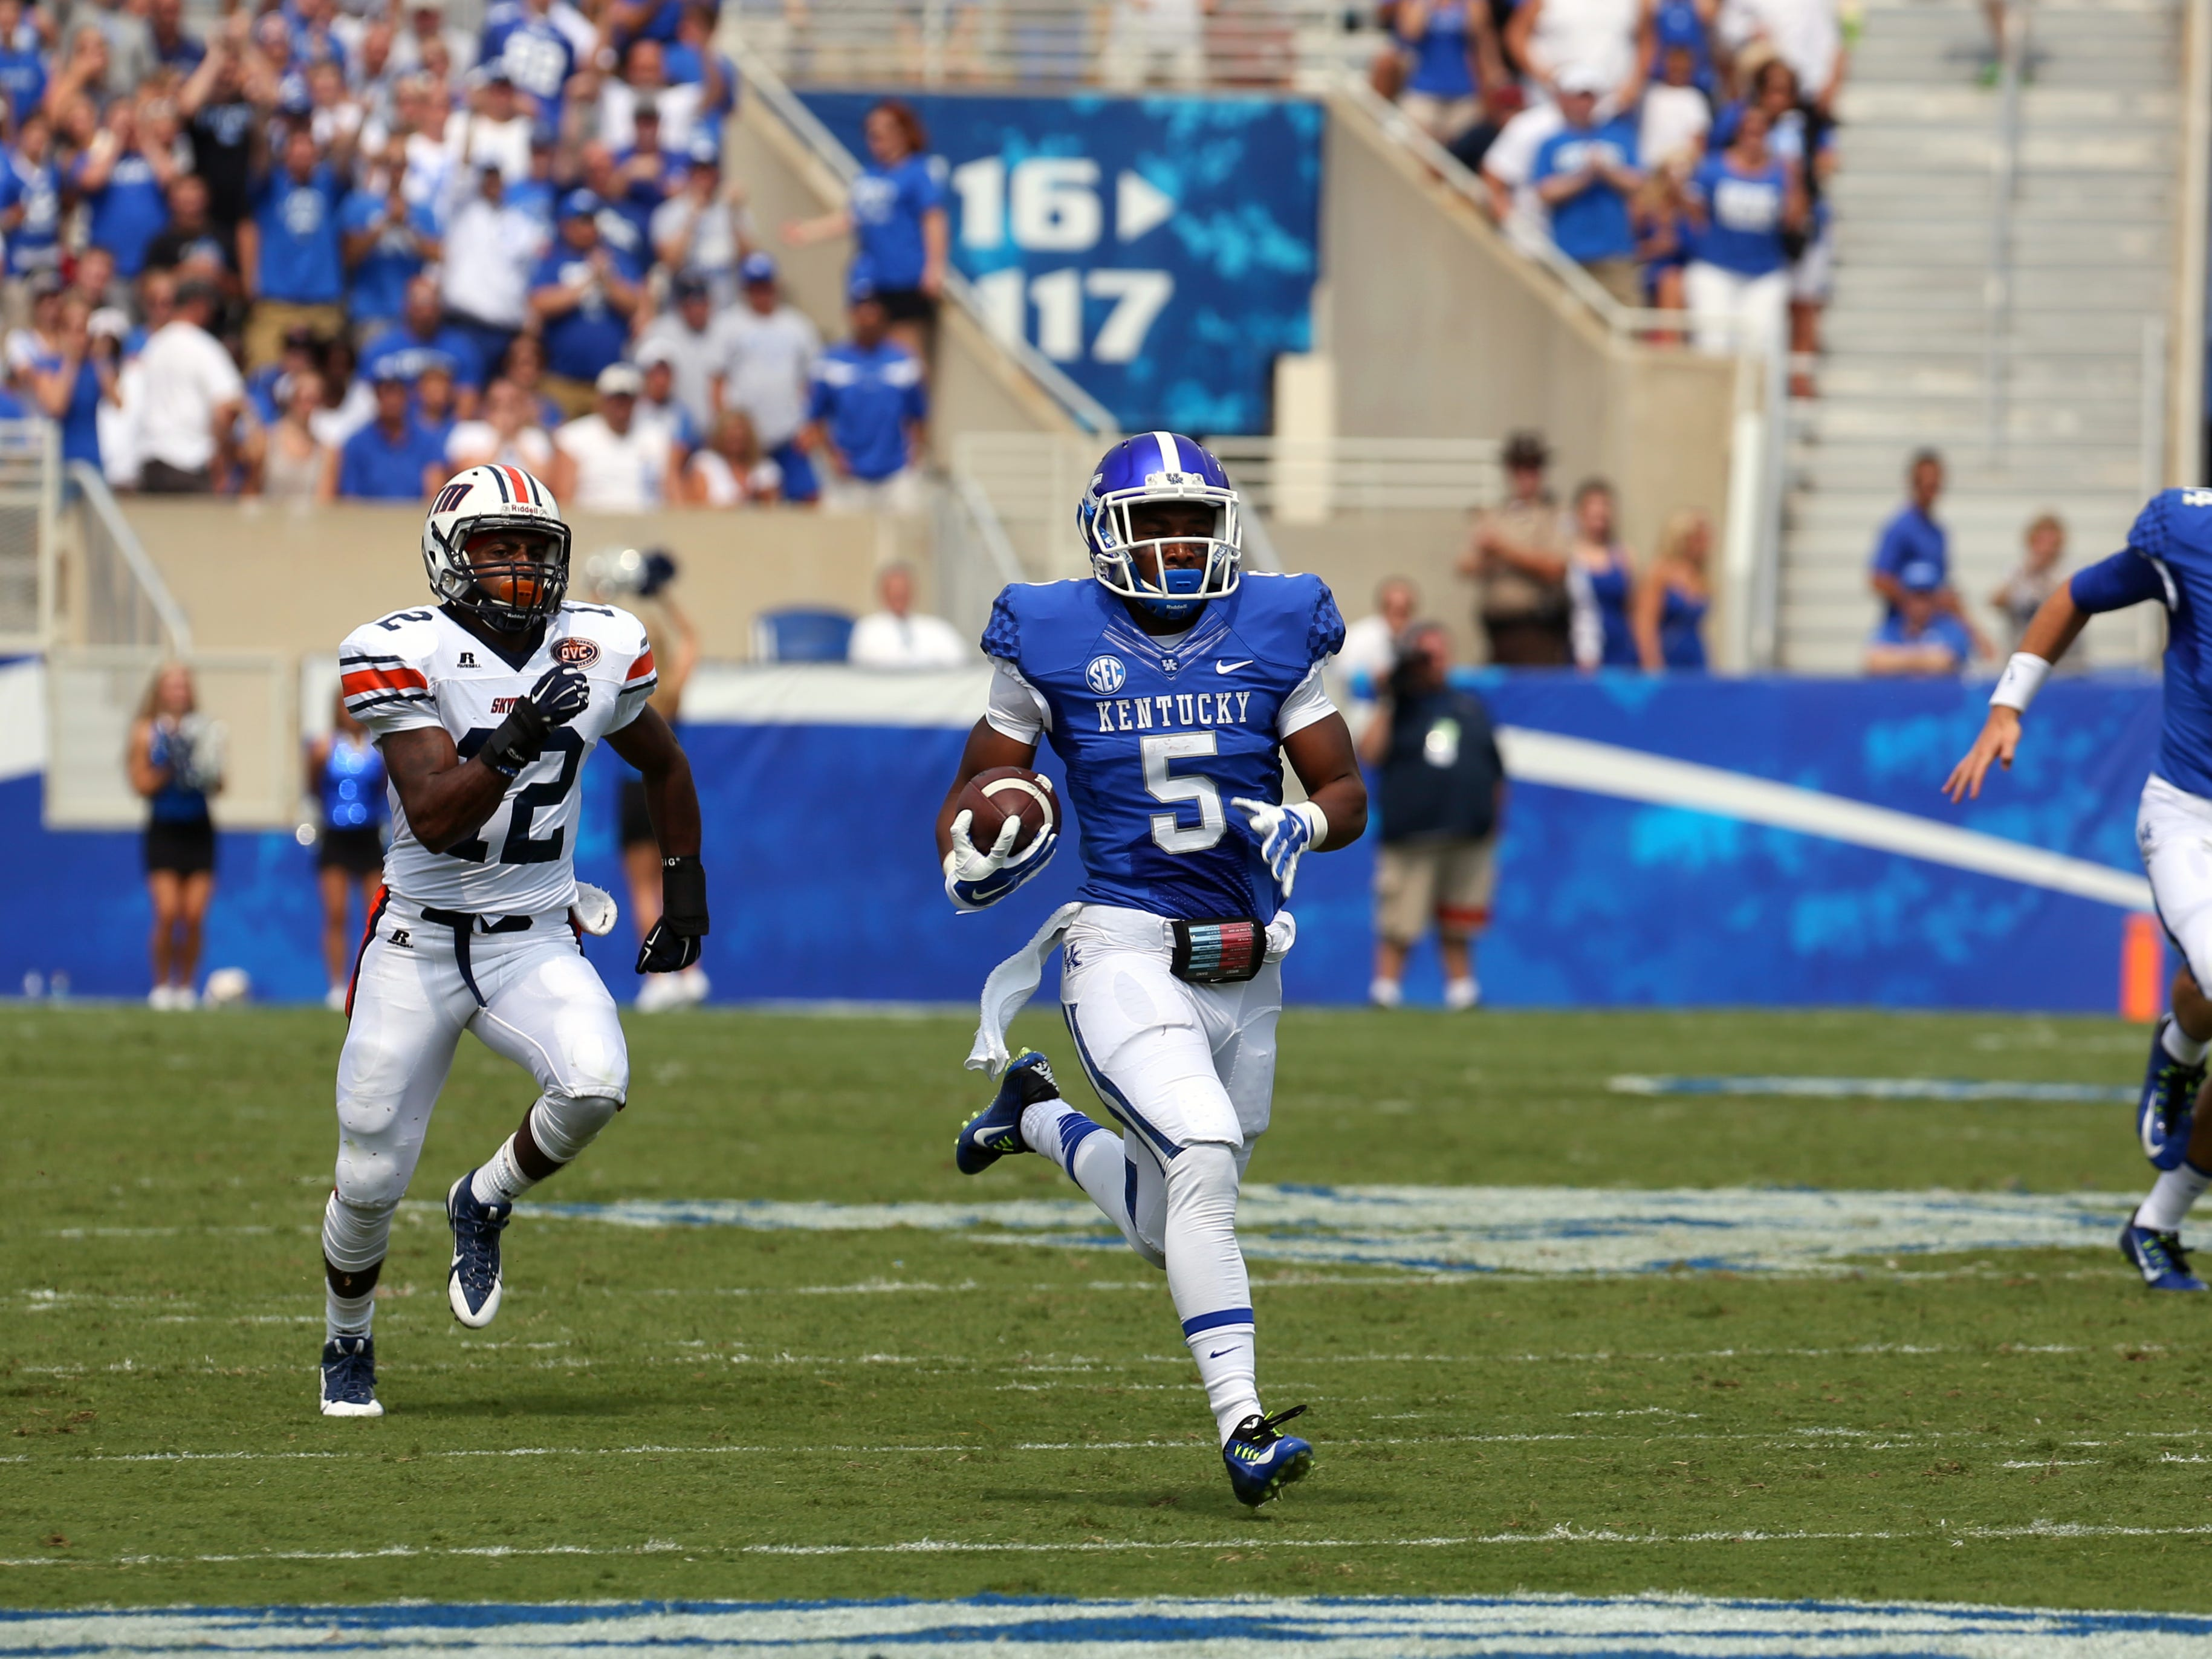 Kentucky's Braylon Heard breaks free from the pack to score his first touchdown.